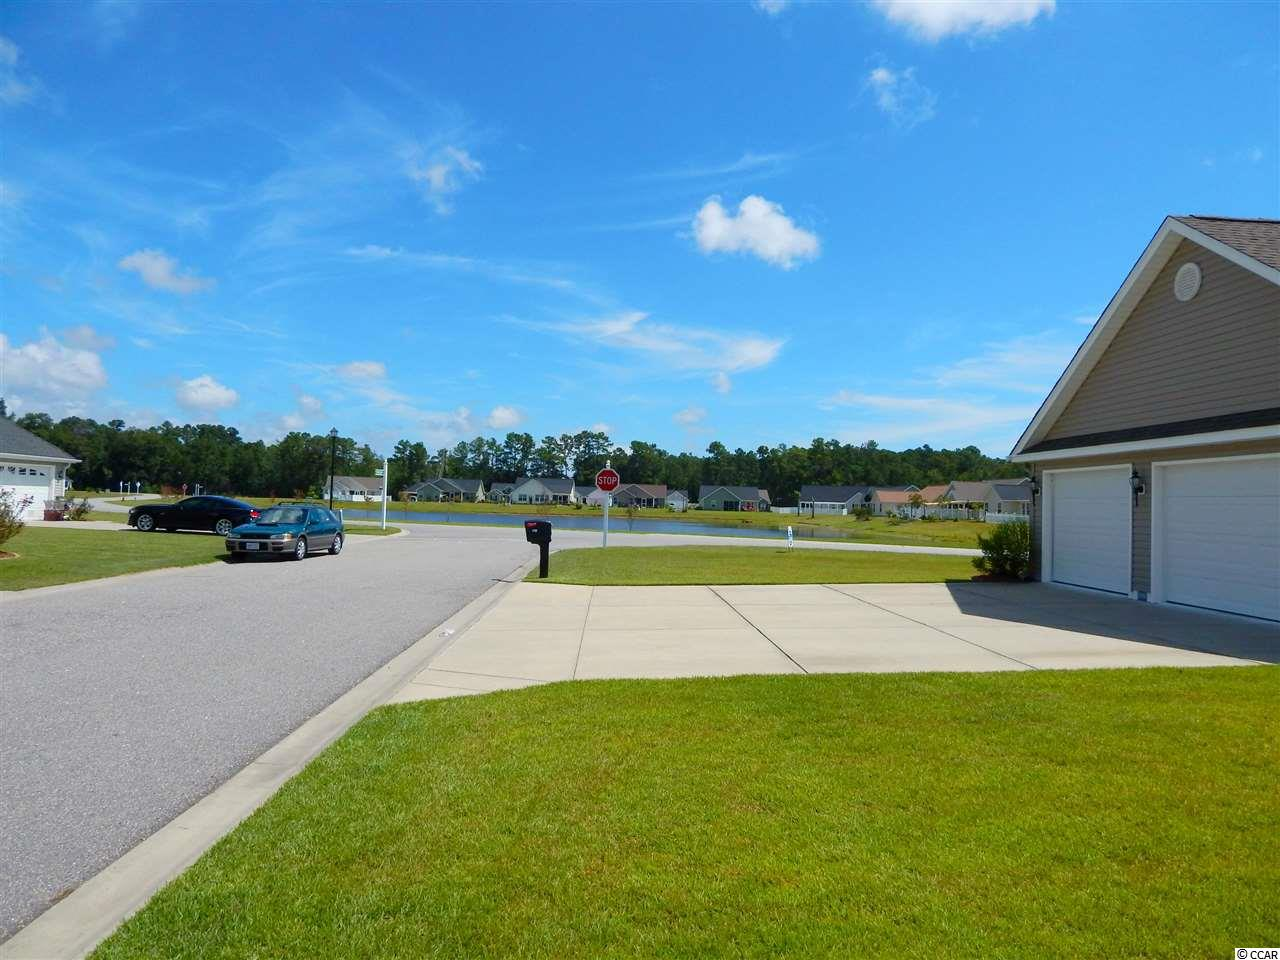 House For Sale At Meadows Of St Patrick In Murrells Inlet South Carolina Unit Listing Mls